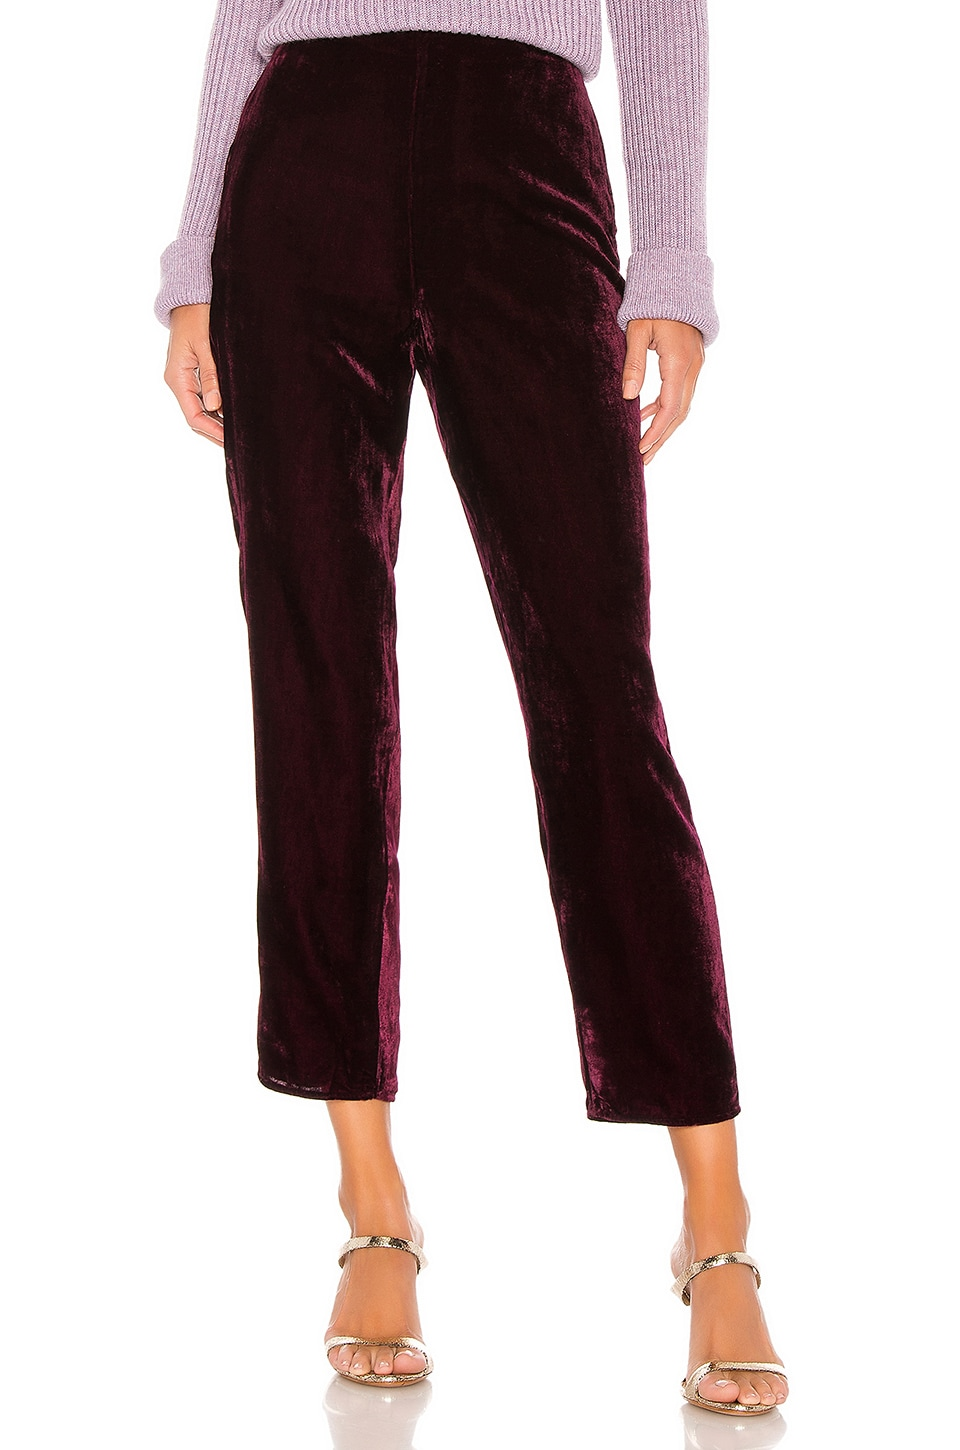 House of Harlow 1960 x REVOLVE Kate Pant in Wine